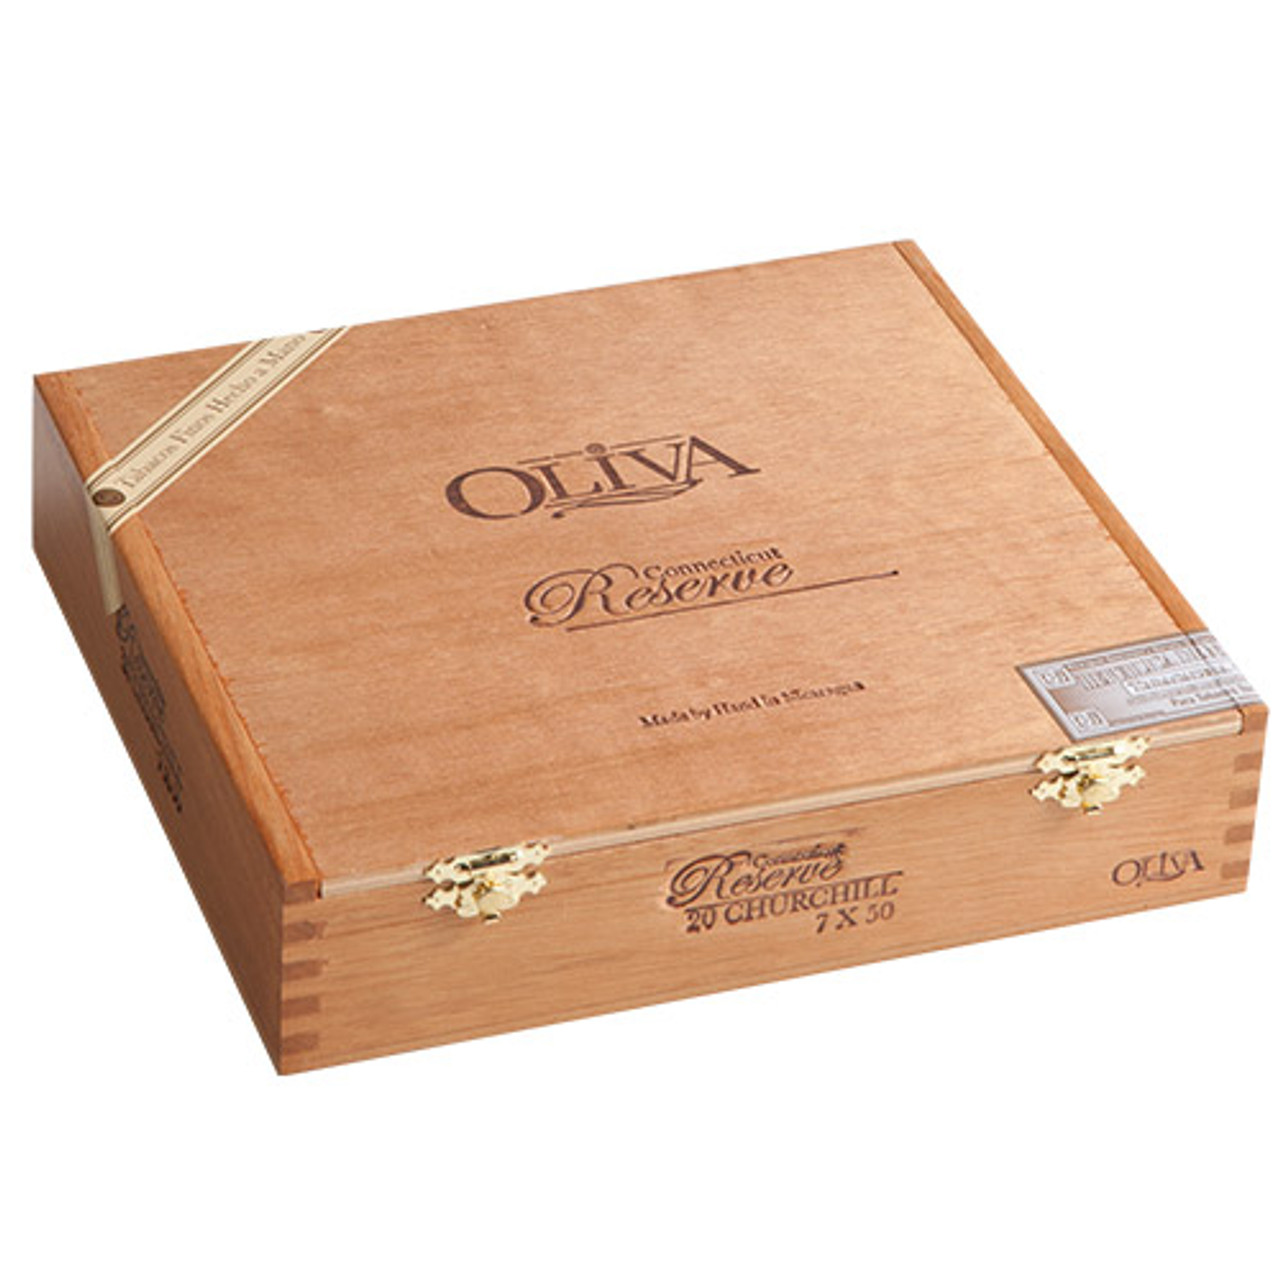 Oliva Connecticut Reserve Double Toro Cigars - 6 x 60 (Pack of 10)